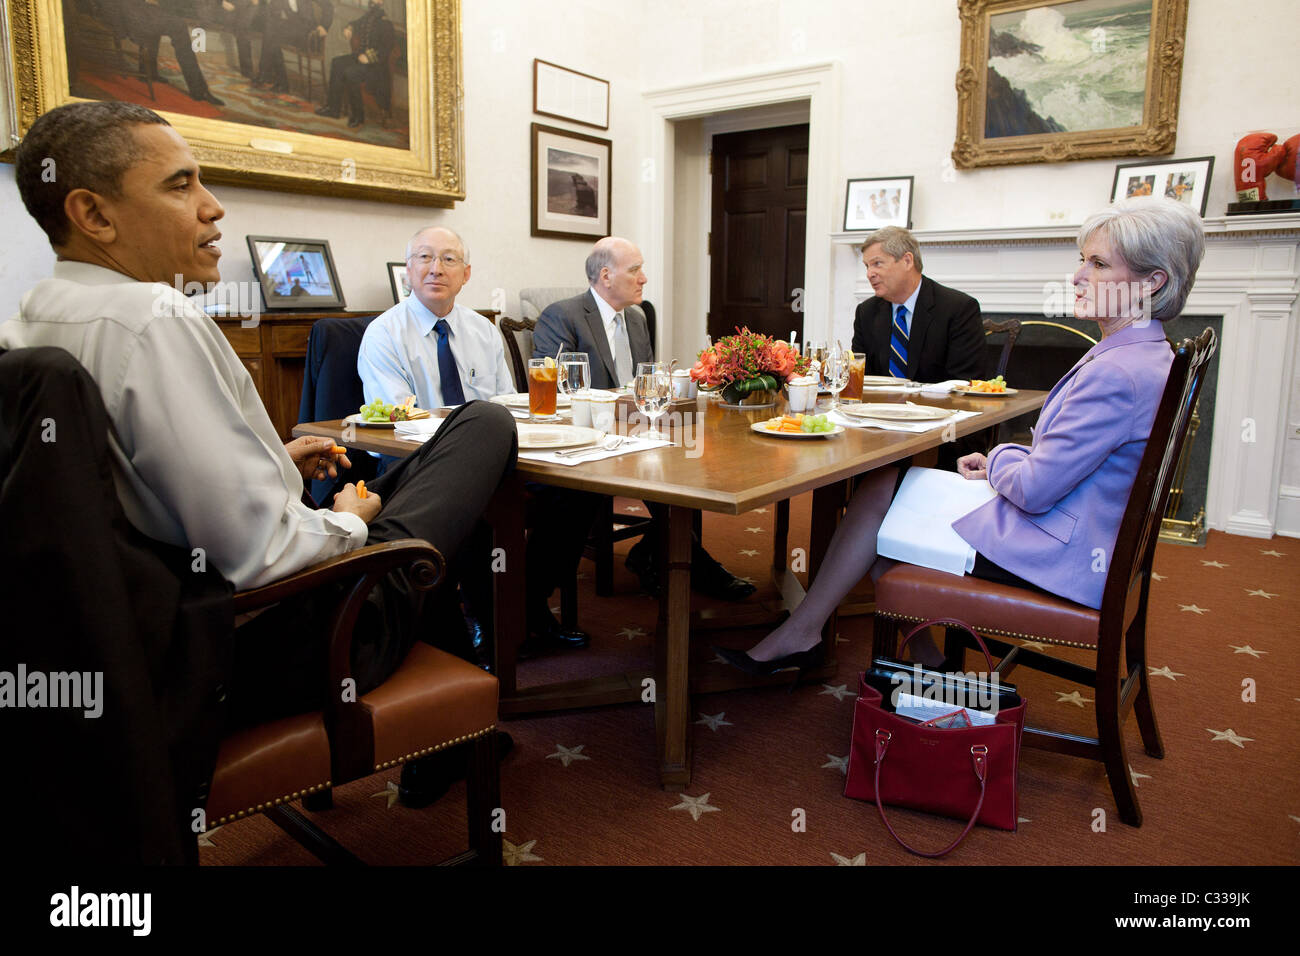 President Barack Obama has lunch with Cabinet secretaries in the Oval Office Private Dining Room, March 10, 2011. - Stock Image